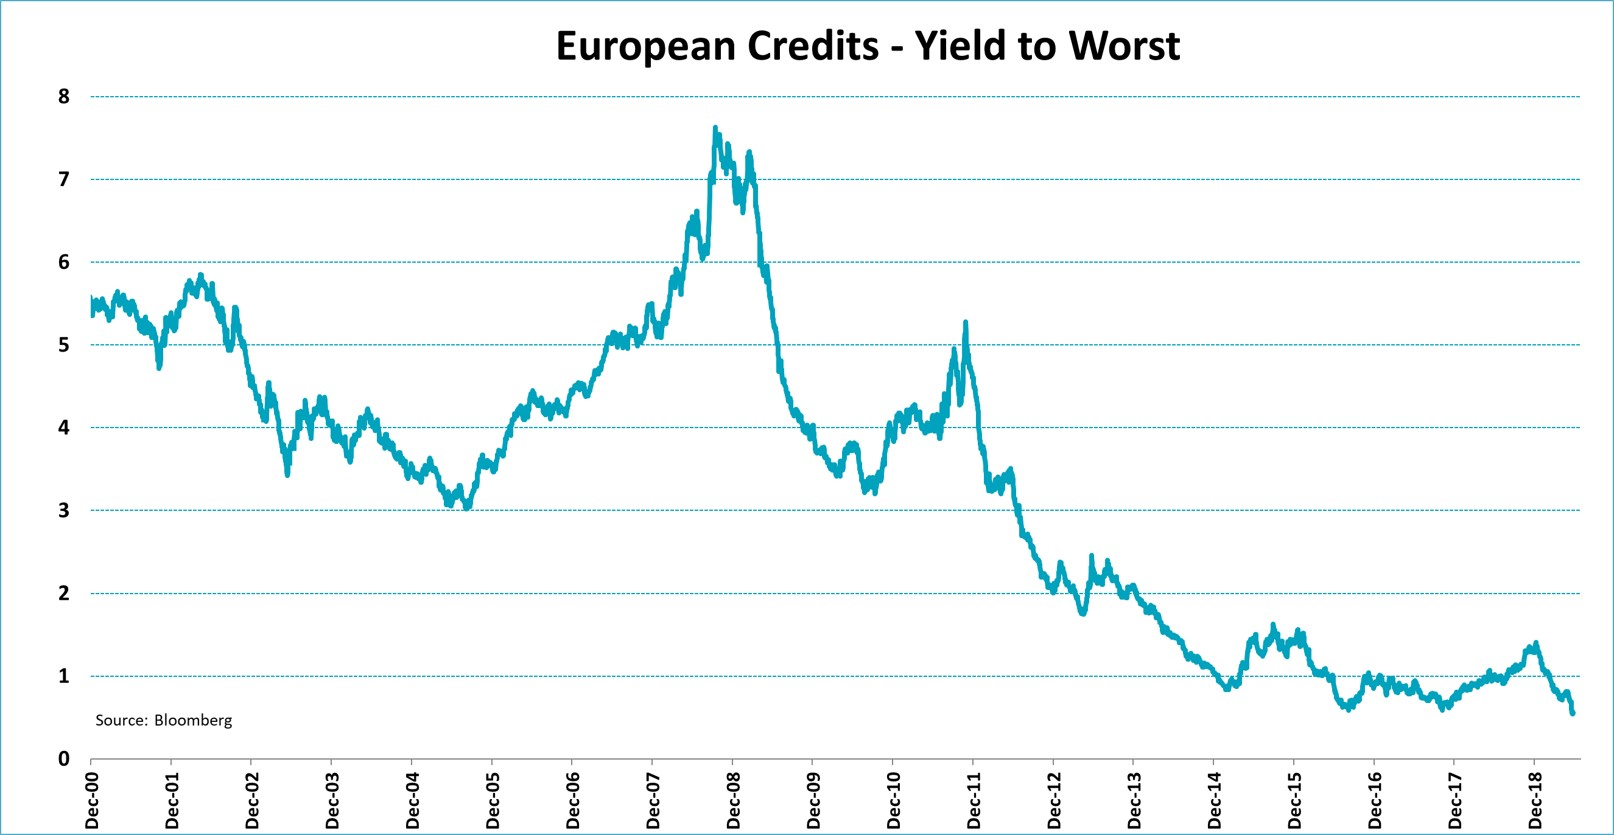 European Credits - Yield To Worst